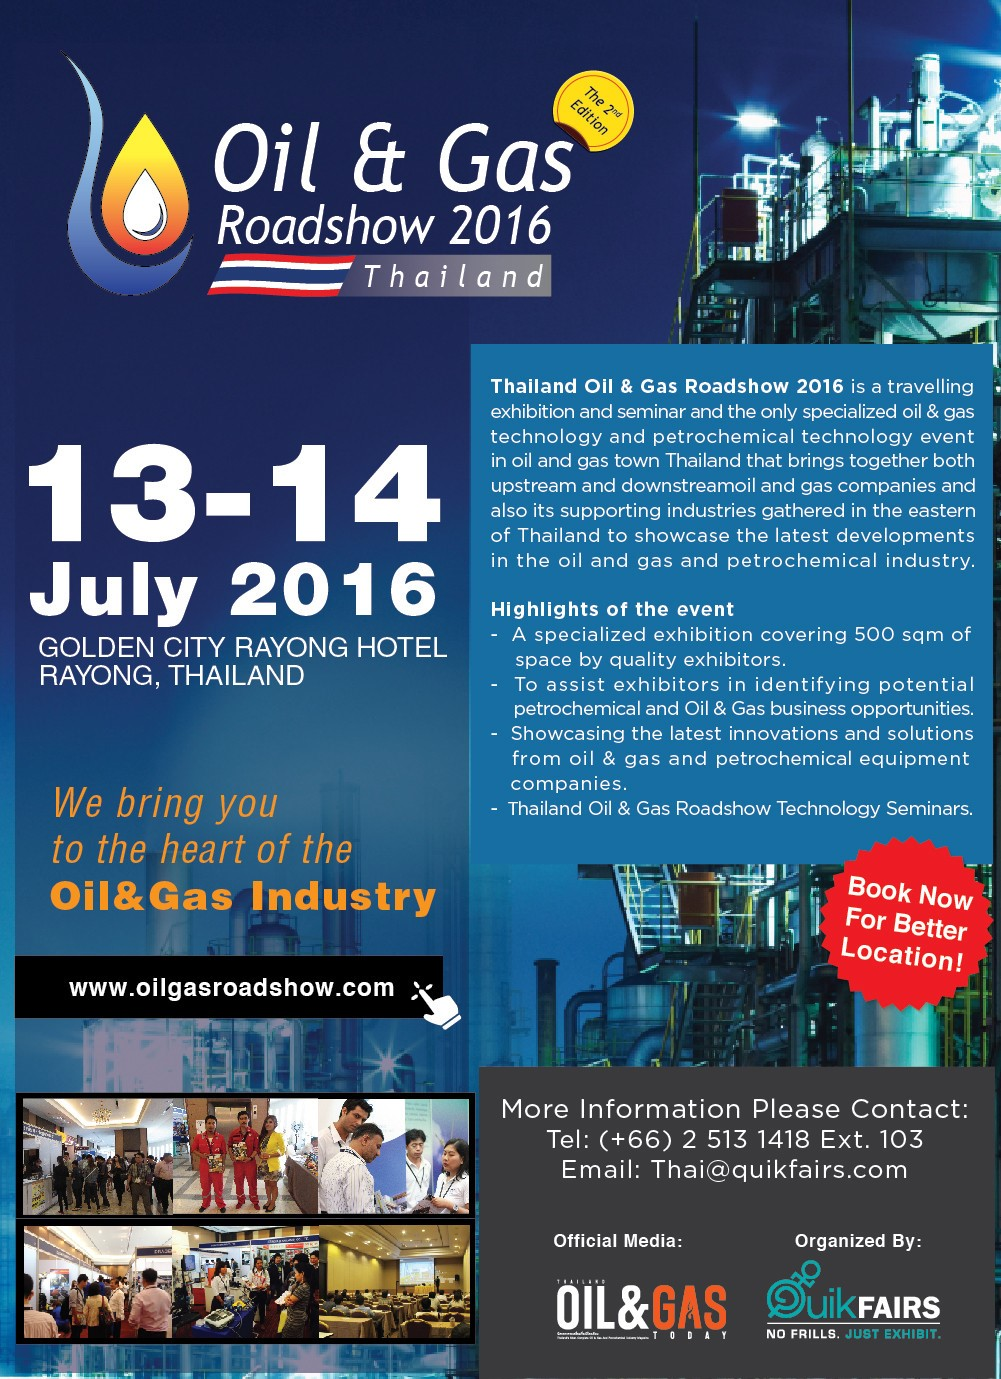 Visit Us at Oil & Gas Roadshow 2016 Thailand Exhibition